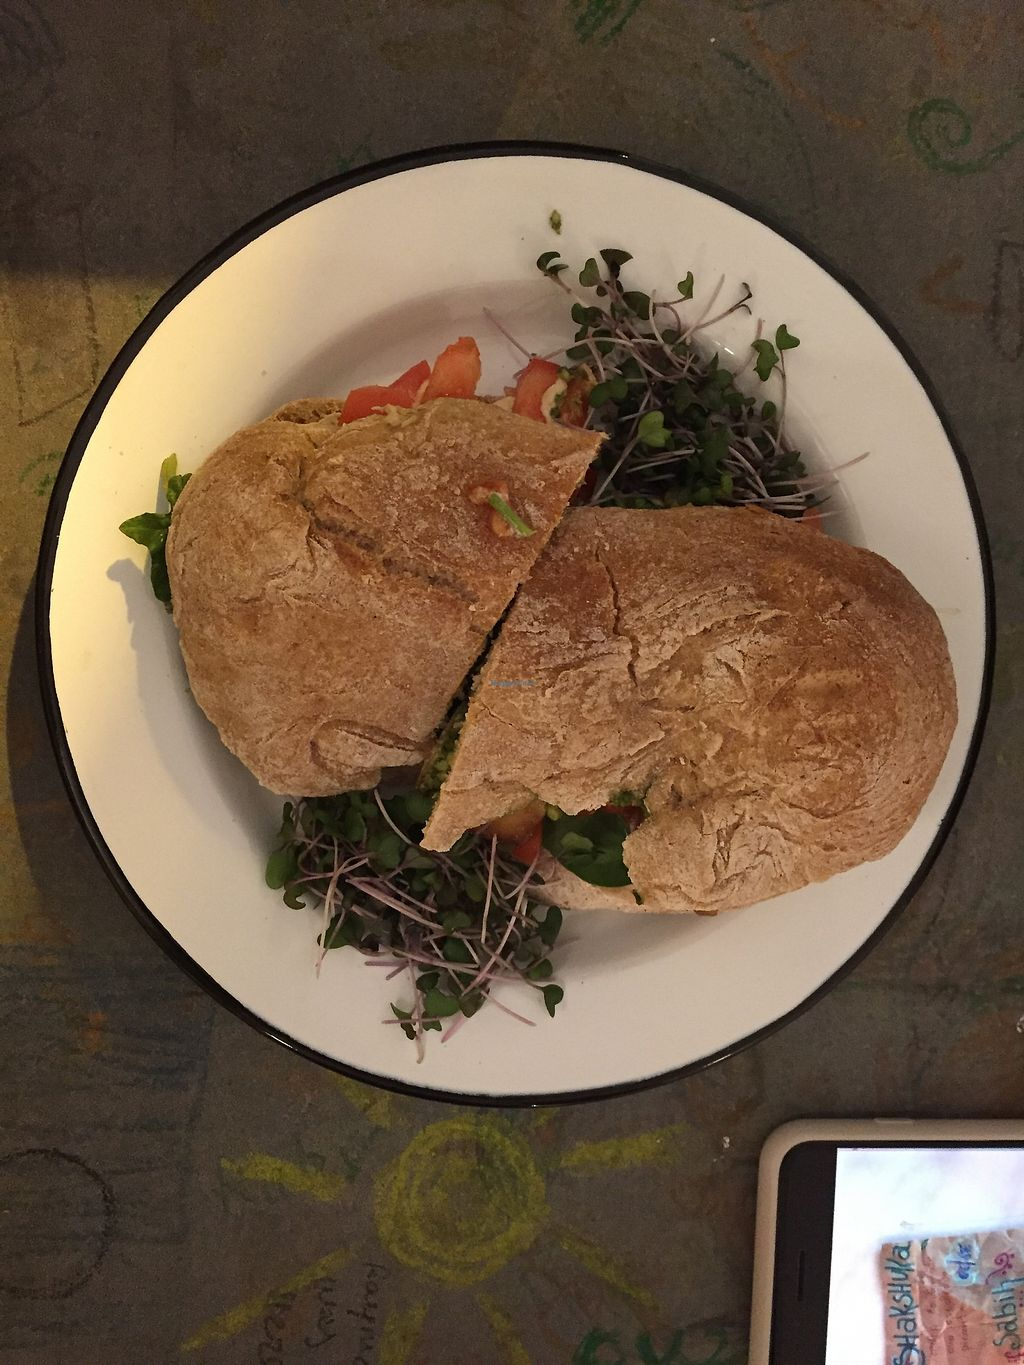 """Photo of Eight - The Health Lounge  by <a href=""""/members/profile/Joanacurado"""">Joanacurado</a> <br/>Husband's Panini <br/> February 26, 2018  - <a href='/contact/abuse/image/111218/364118'>Report</a>"""